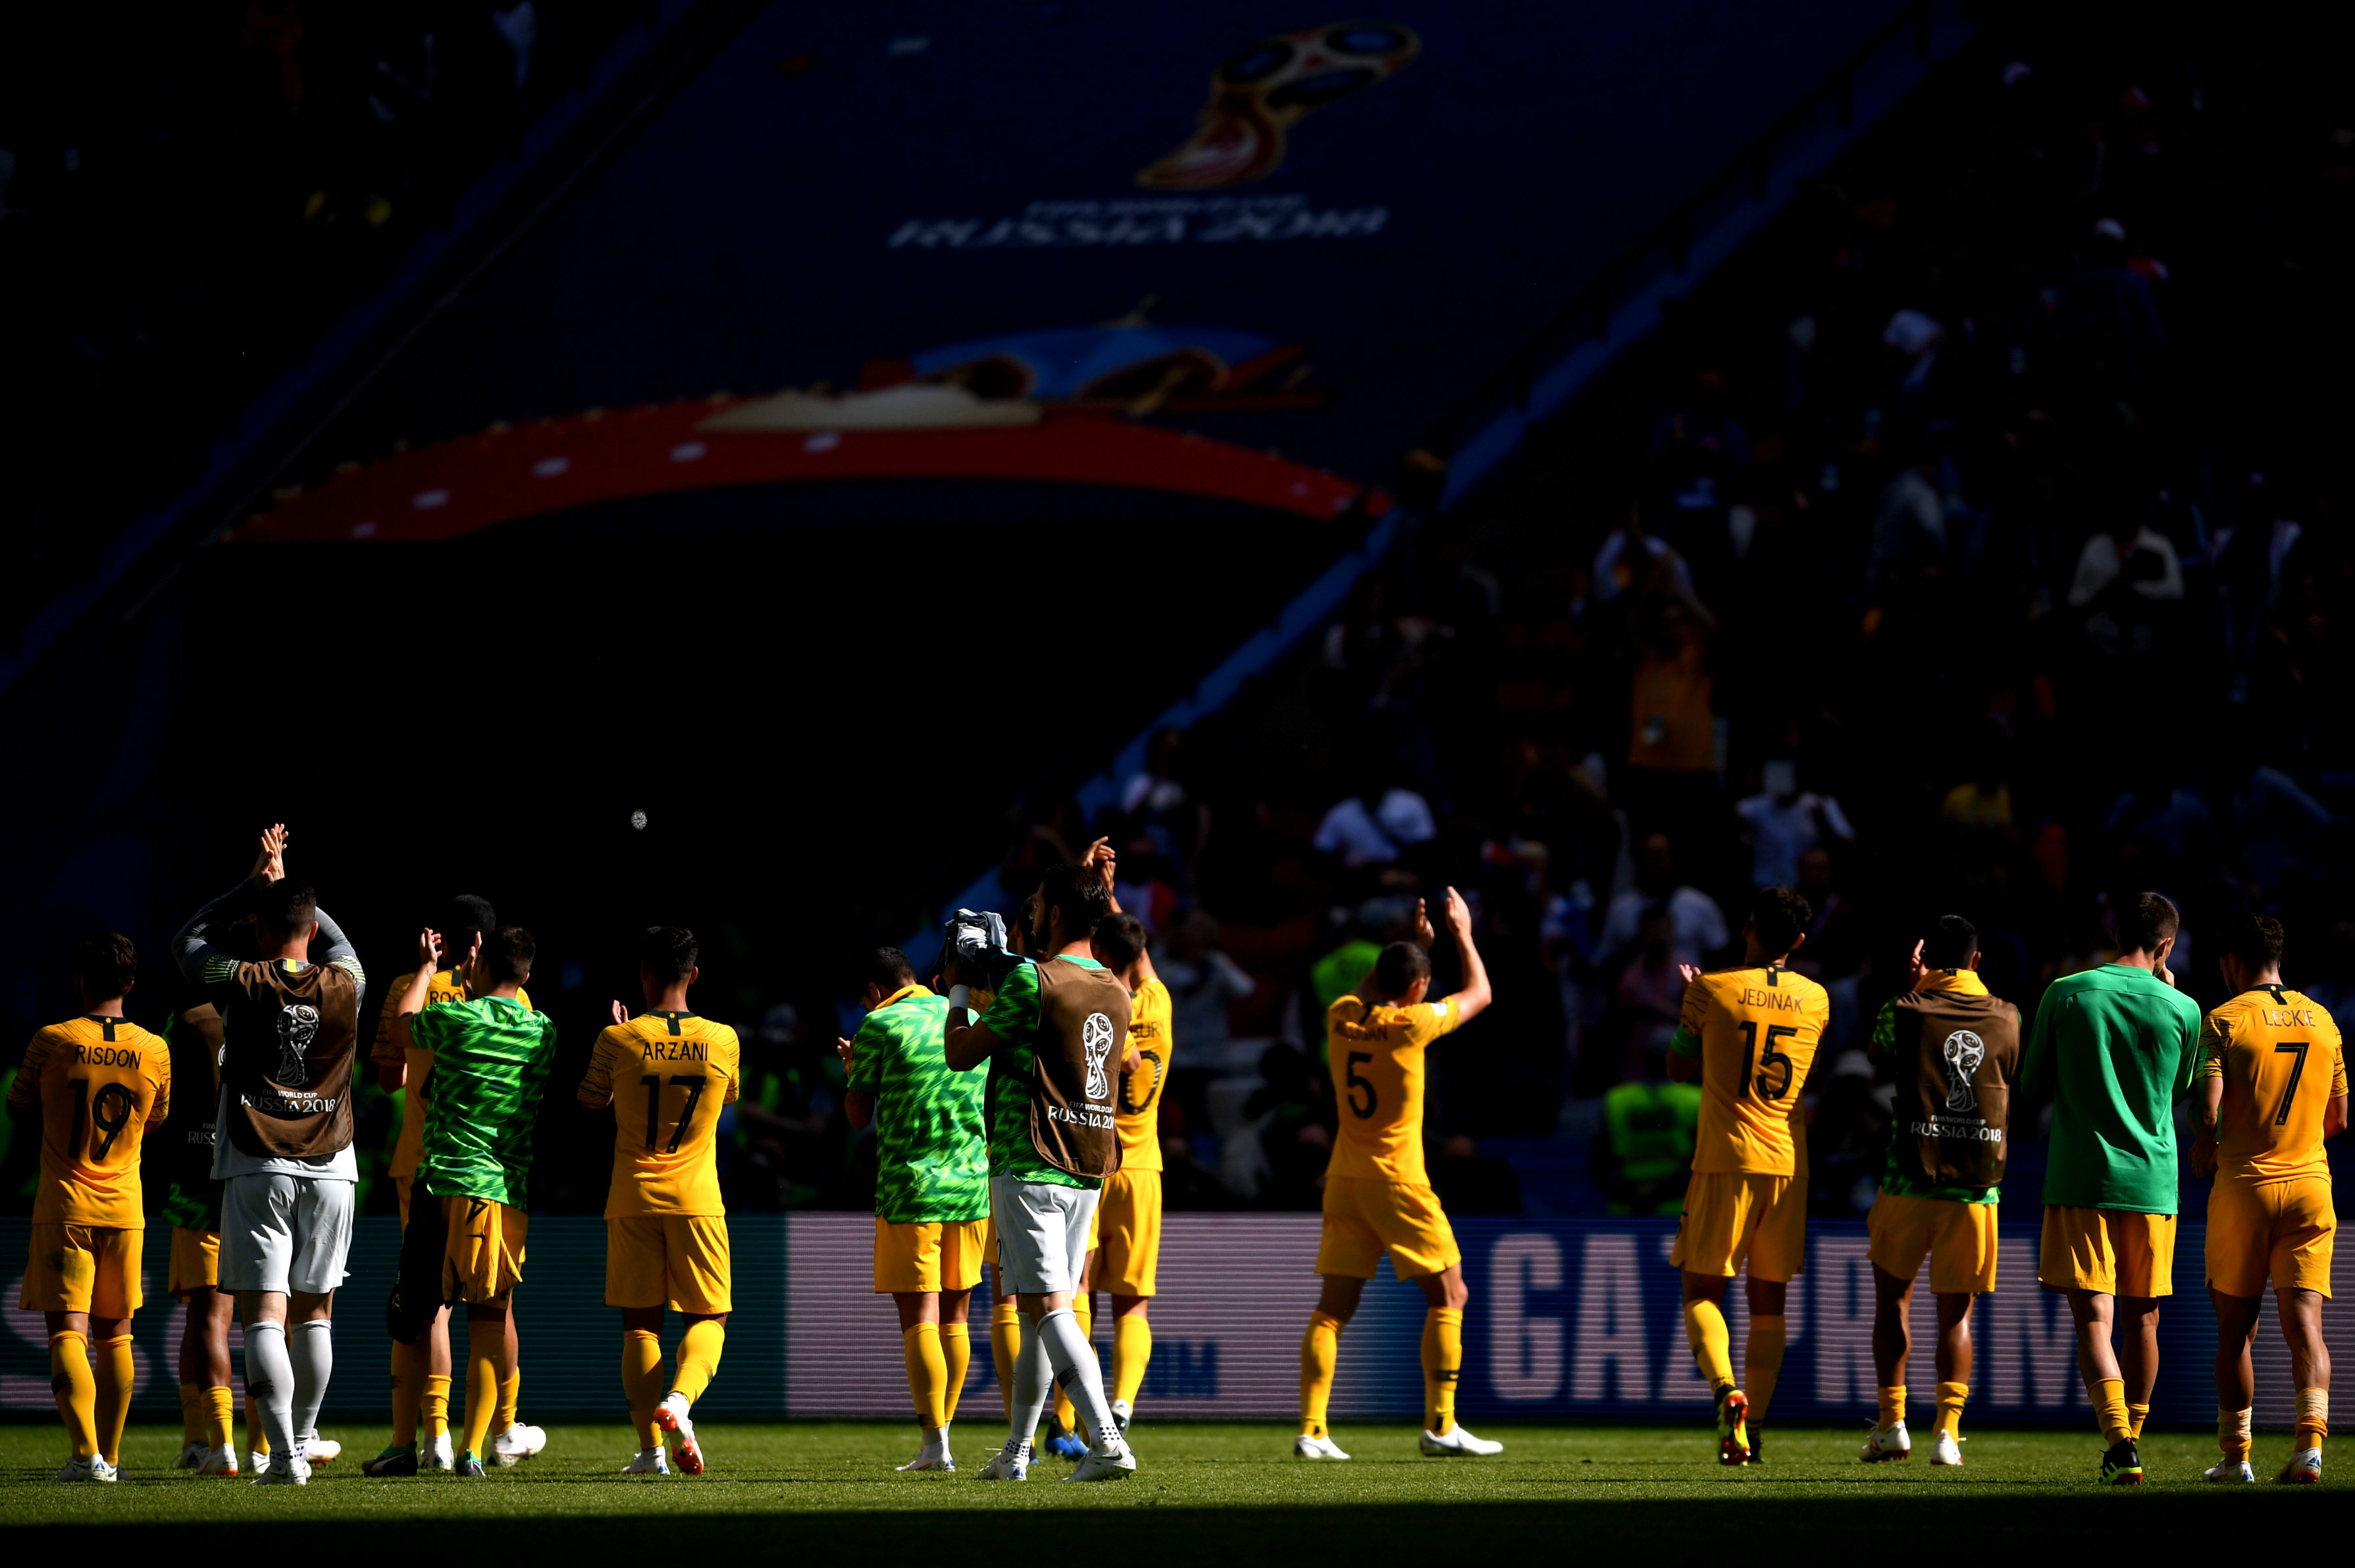 Socceroos players thank the fans for their support inside the Kazan Arena.